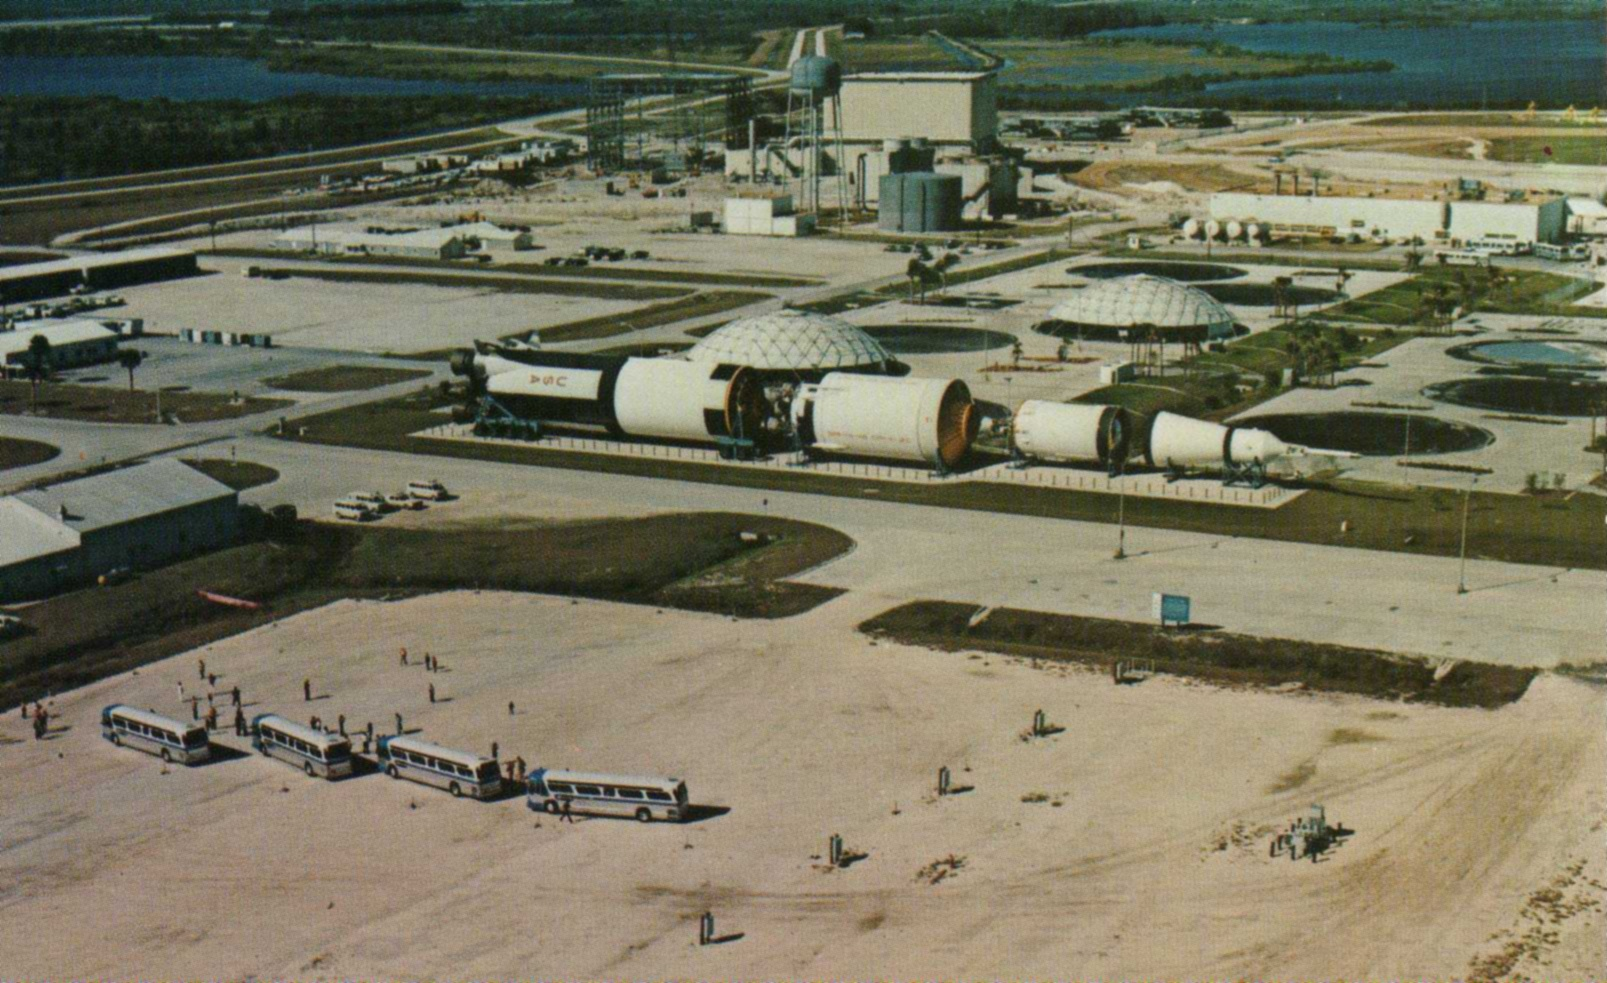 apollo 5 kennedy space center - photo #41